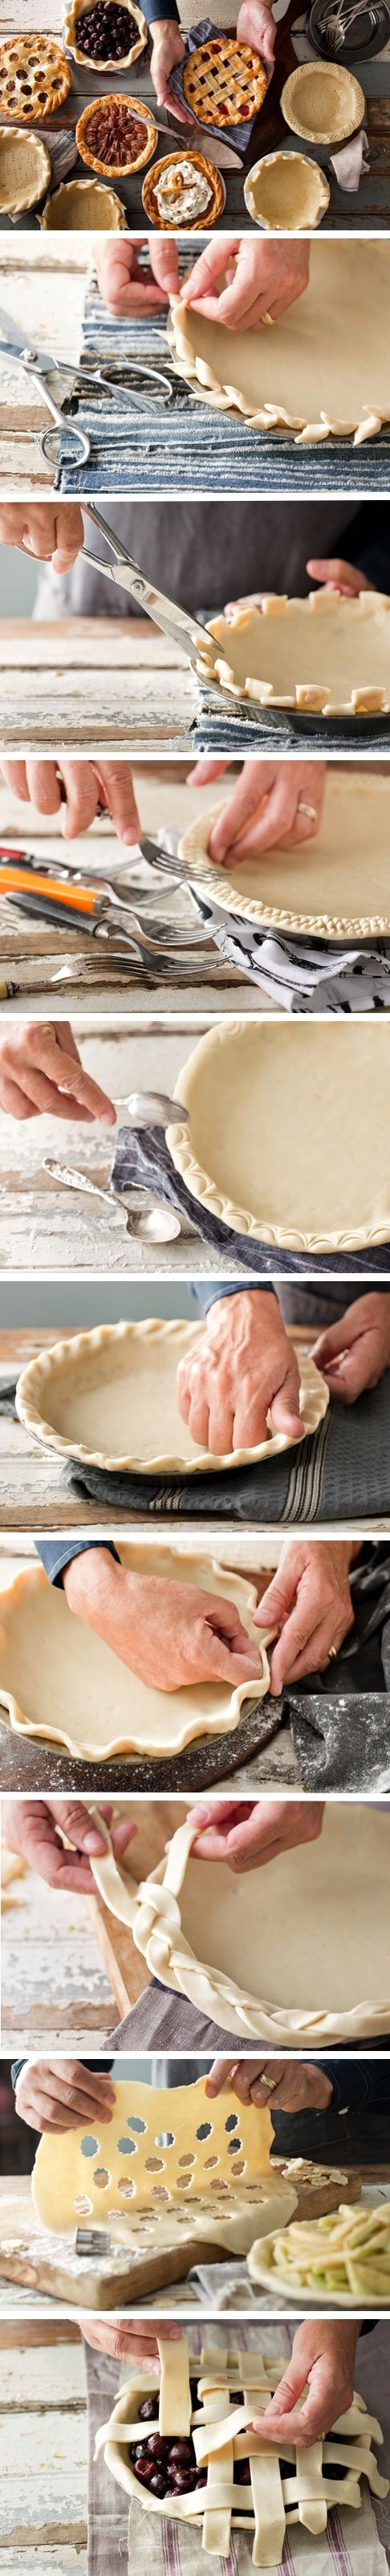 9 Pie crust how-tos (love)